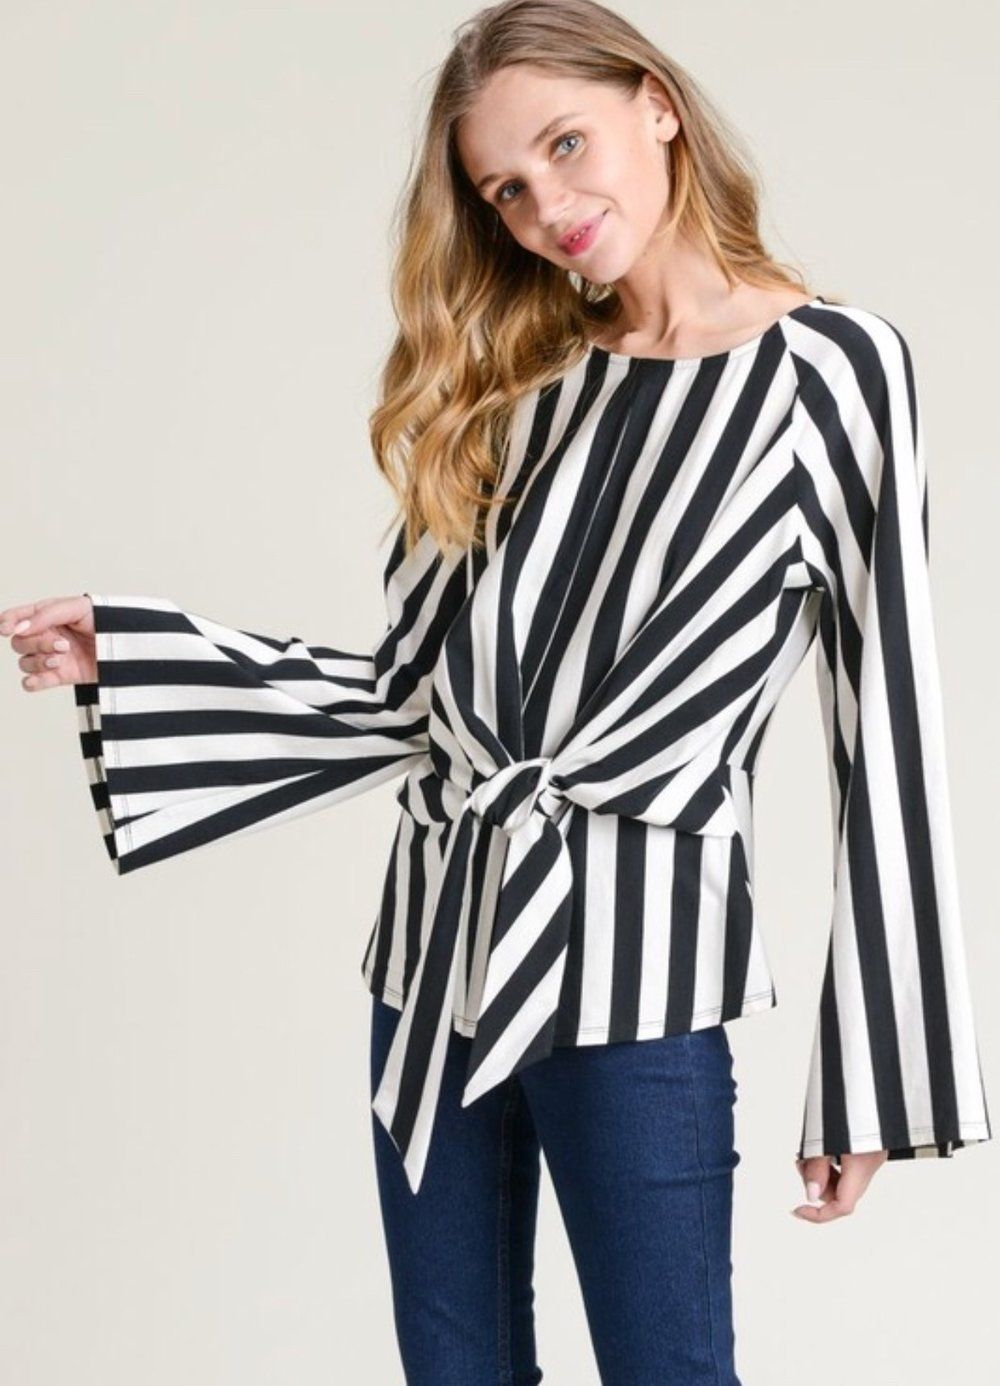 038fcda11586f Striped top with wide long sleeves and a torso wrap tie feature ...